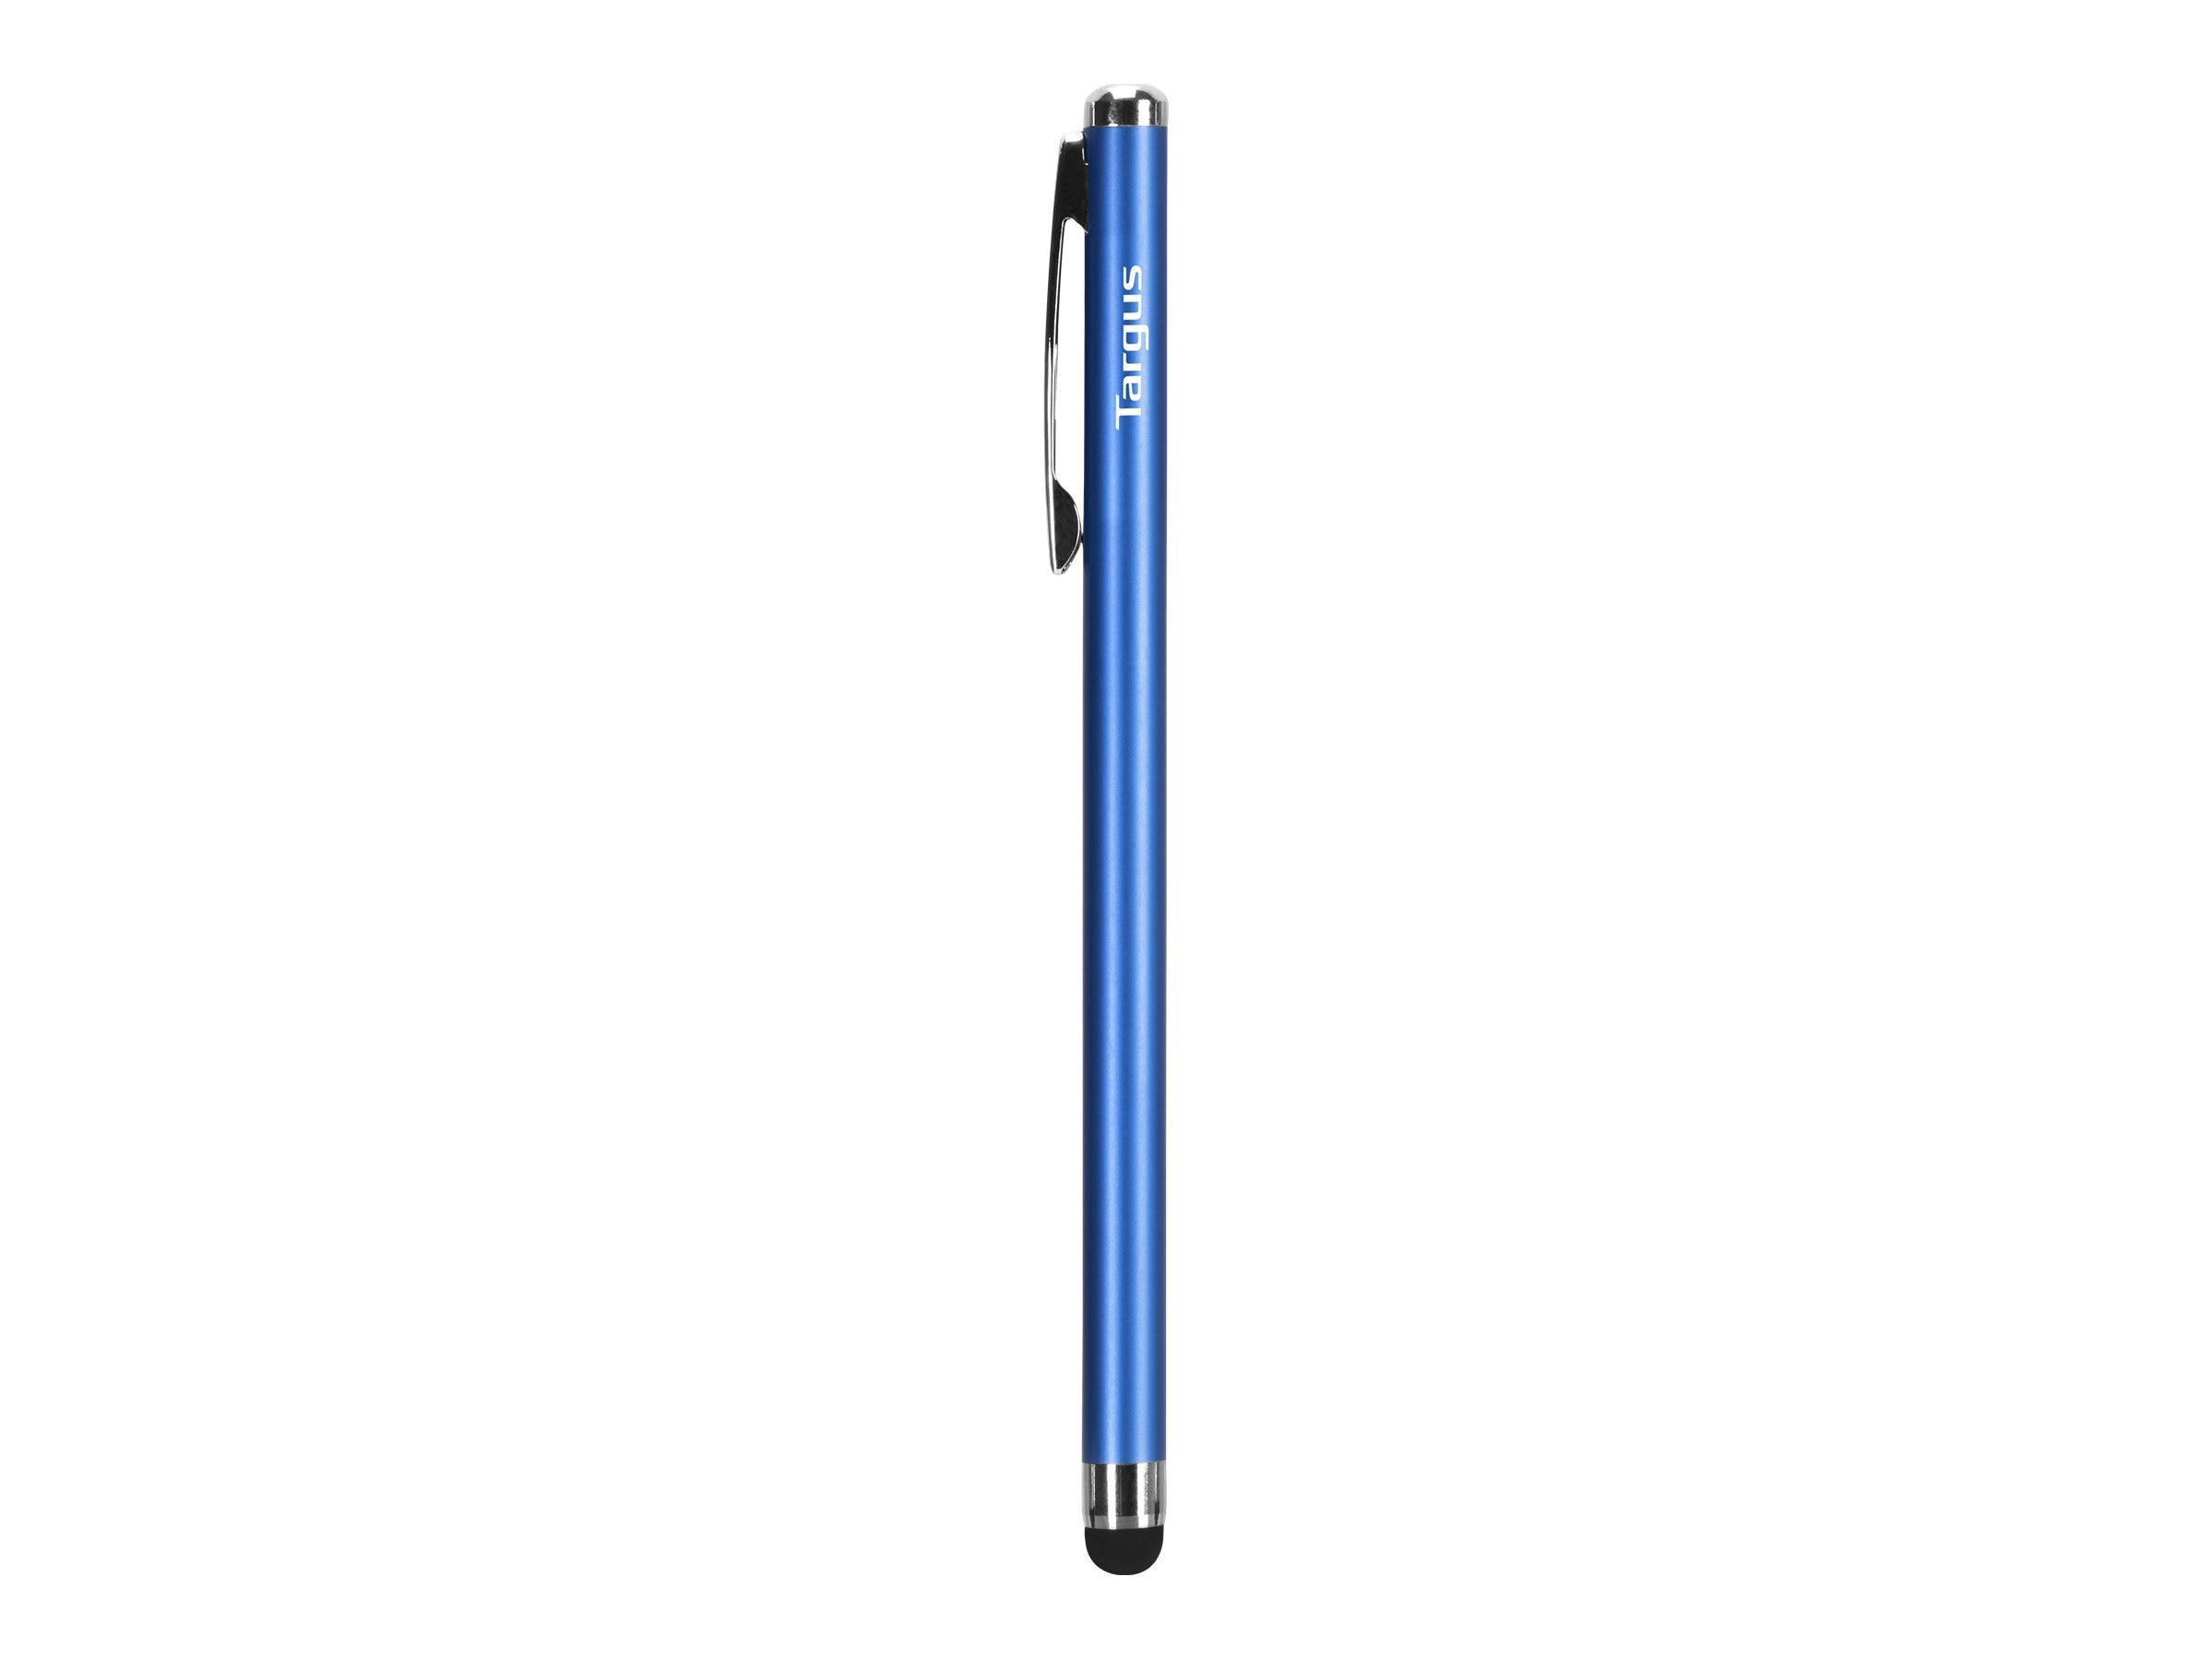 Targus Slim Stylus for Smartphones, Metallic Blue, AMM1203US